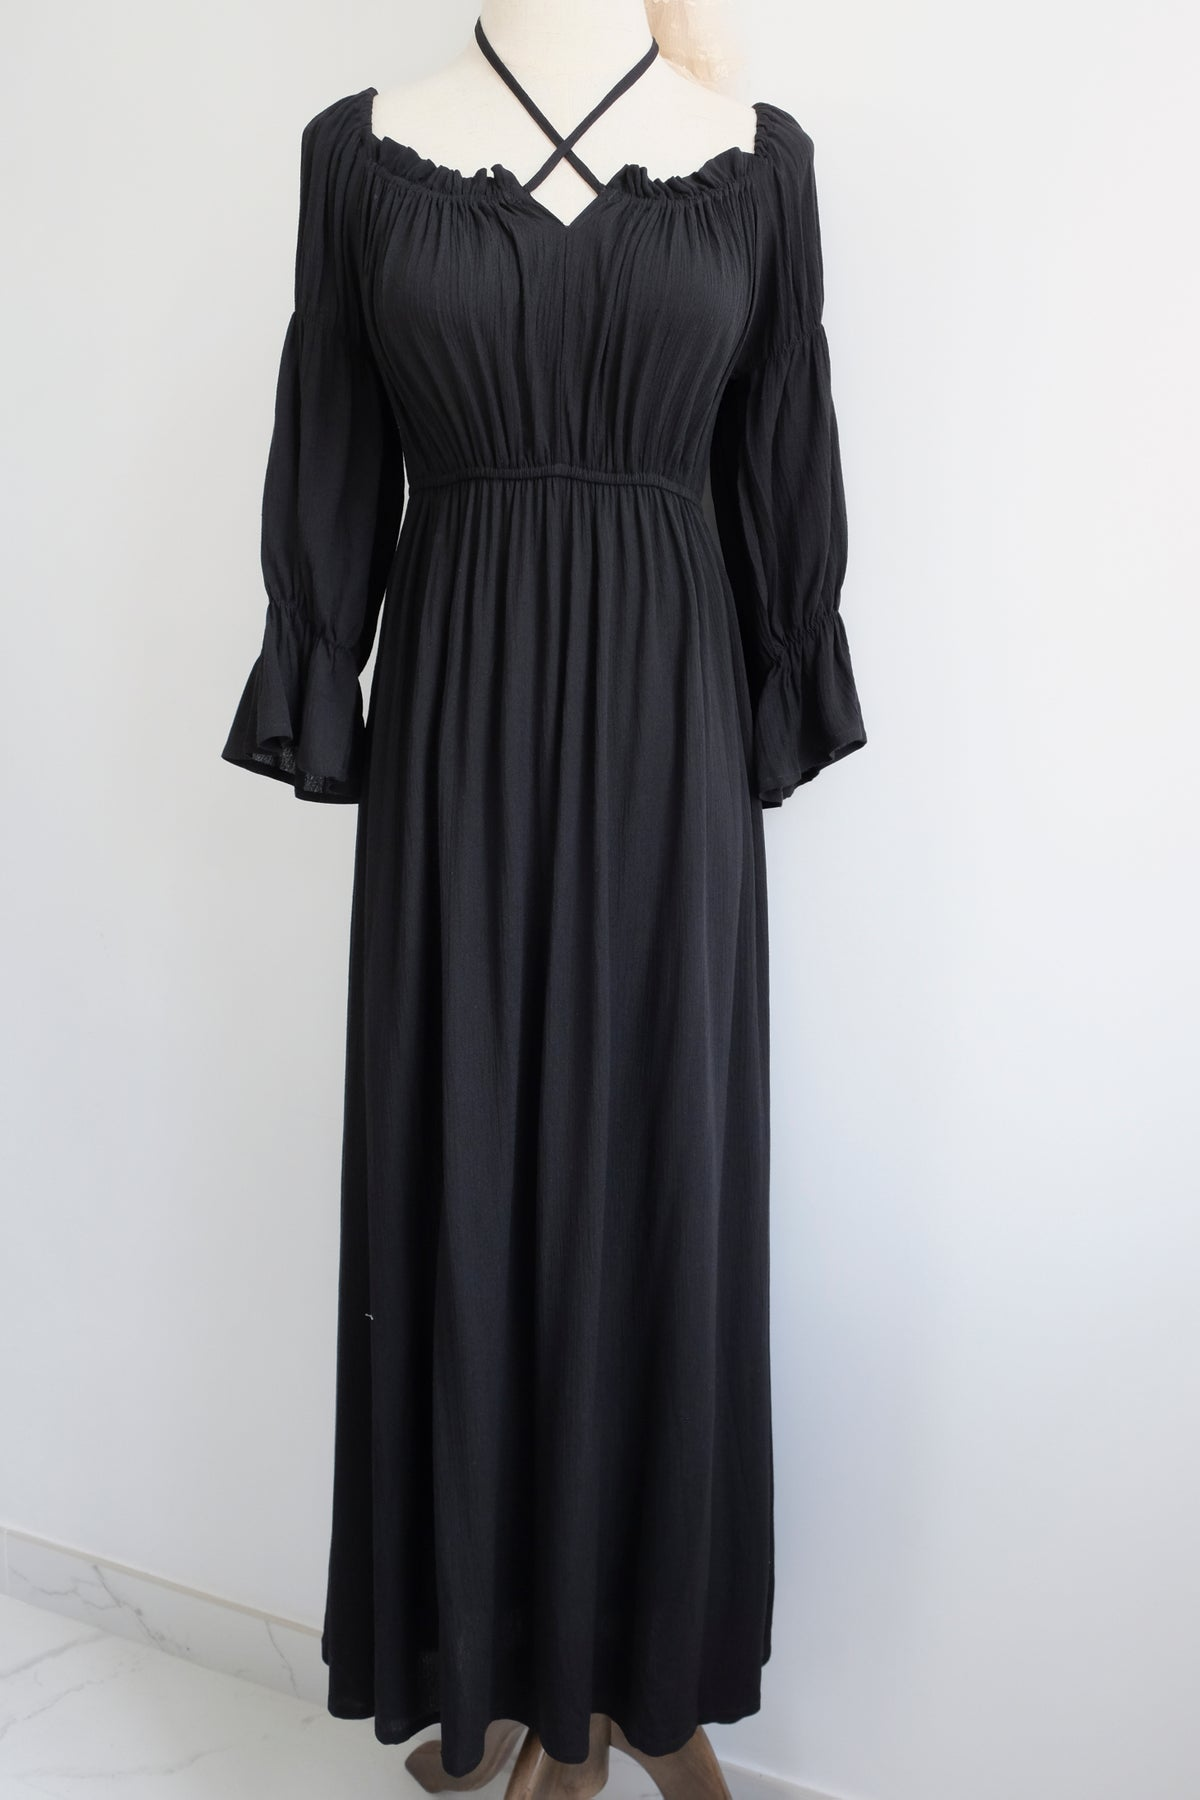 Image of SAMPLE SALE - Unreleased Black Dress 002